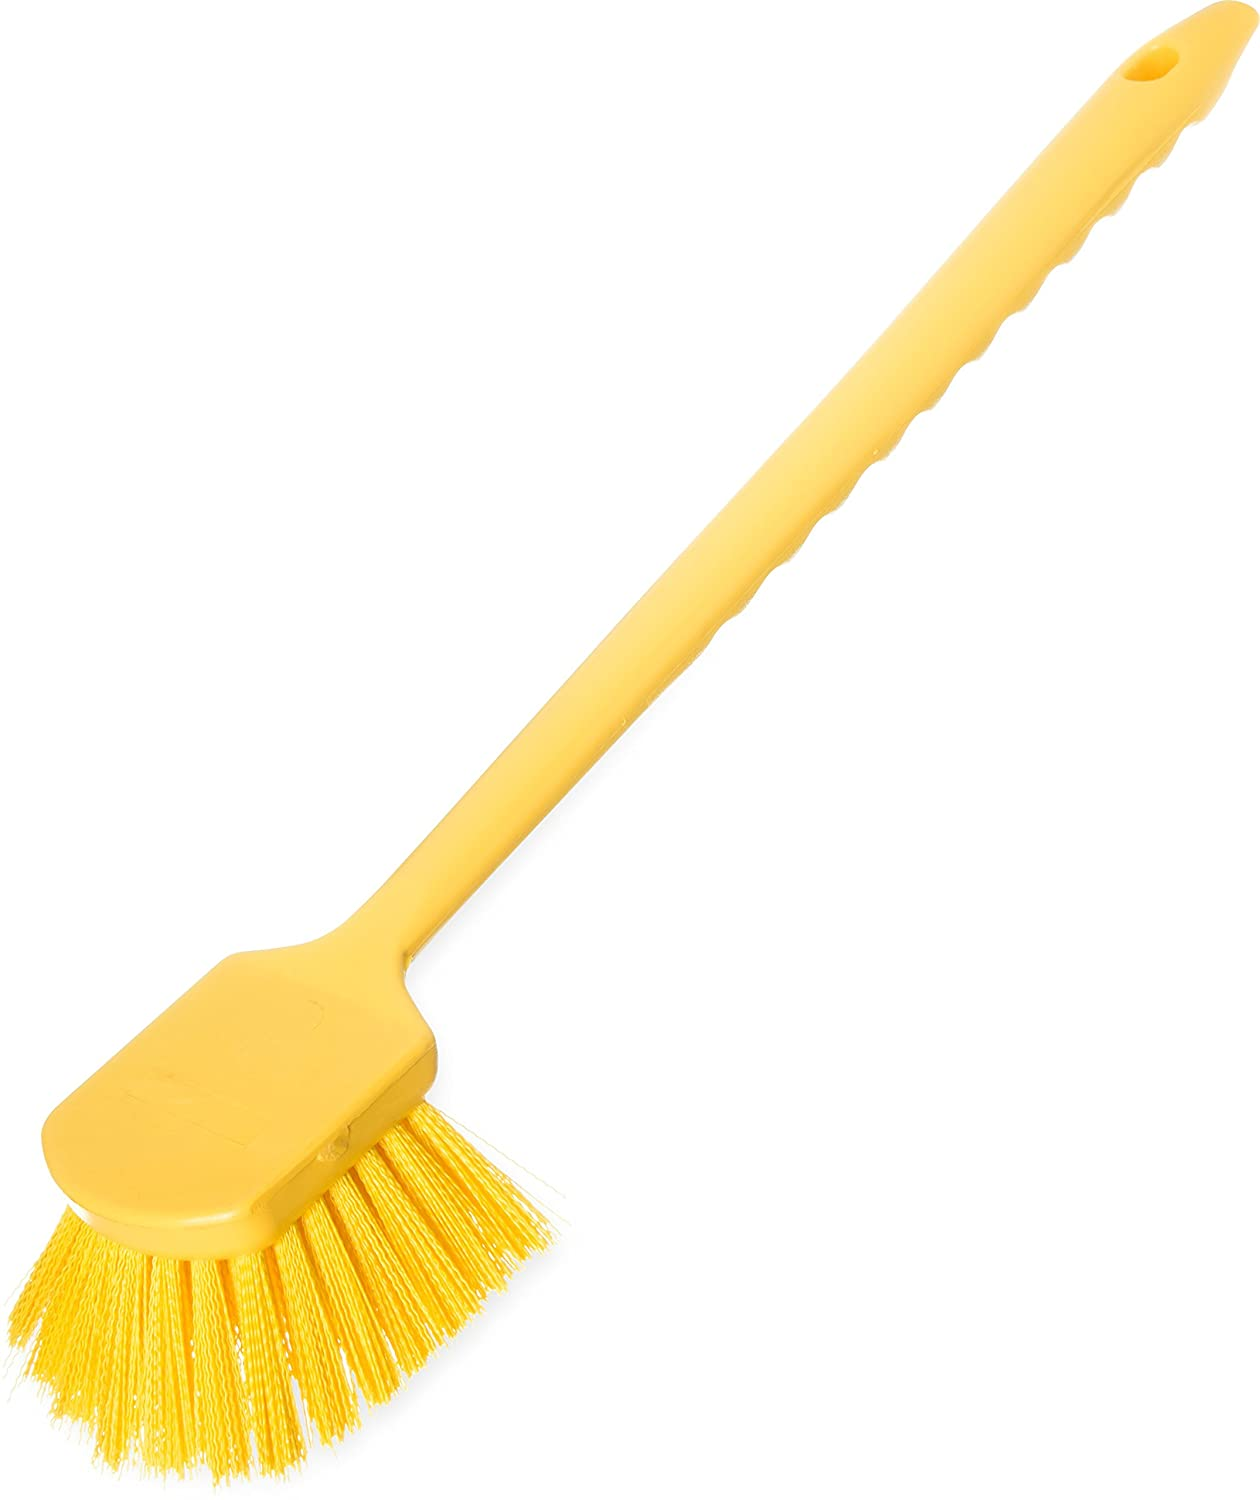 Carlisle 40501C04 Commercial Utility Scrub Brush Polyester Bristles 20 x 3 Yellow Pack of 6